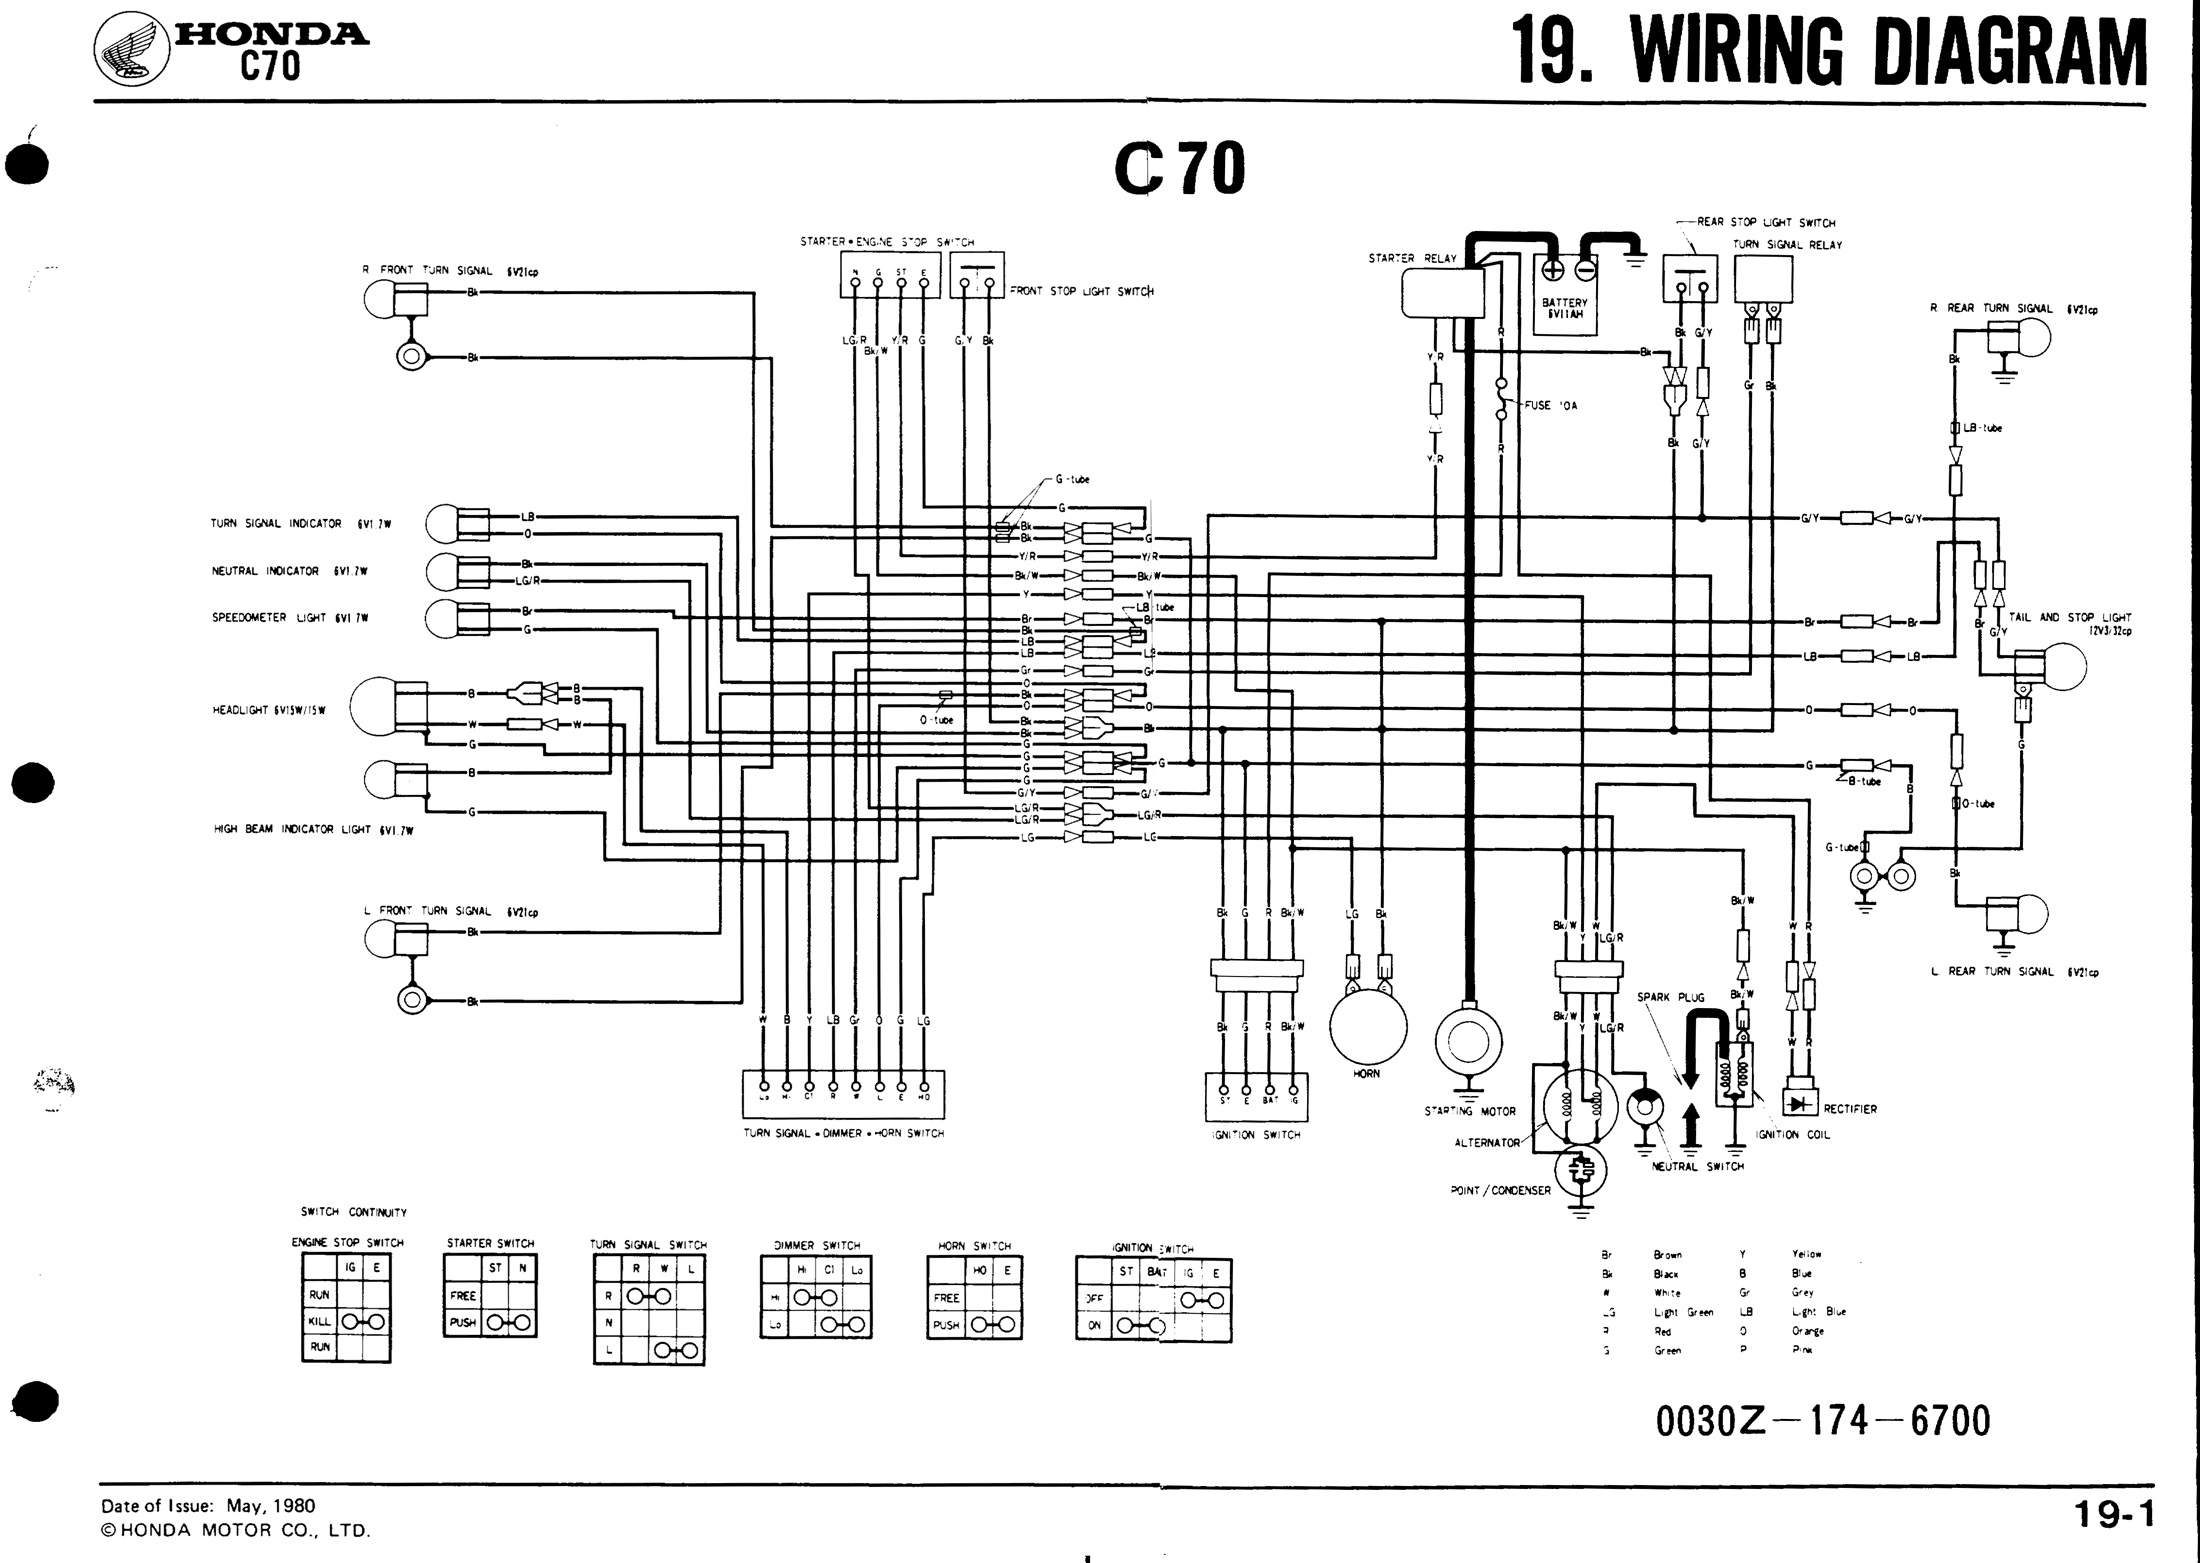 C70 Honda Wiring Diagram on electric bike wiring diagram